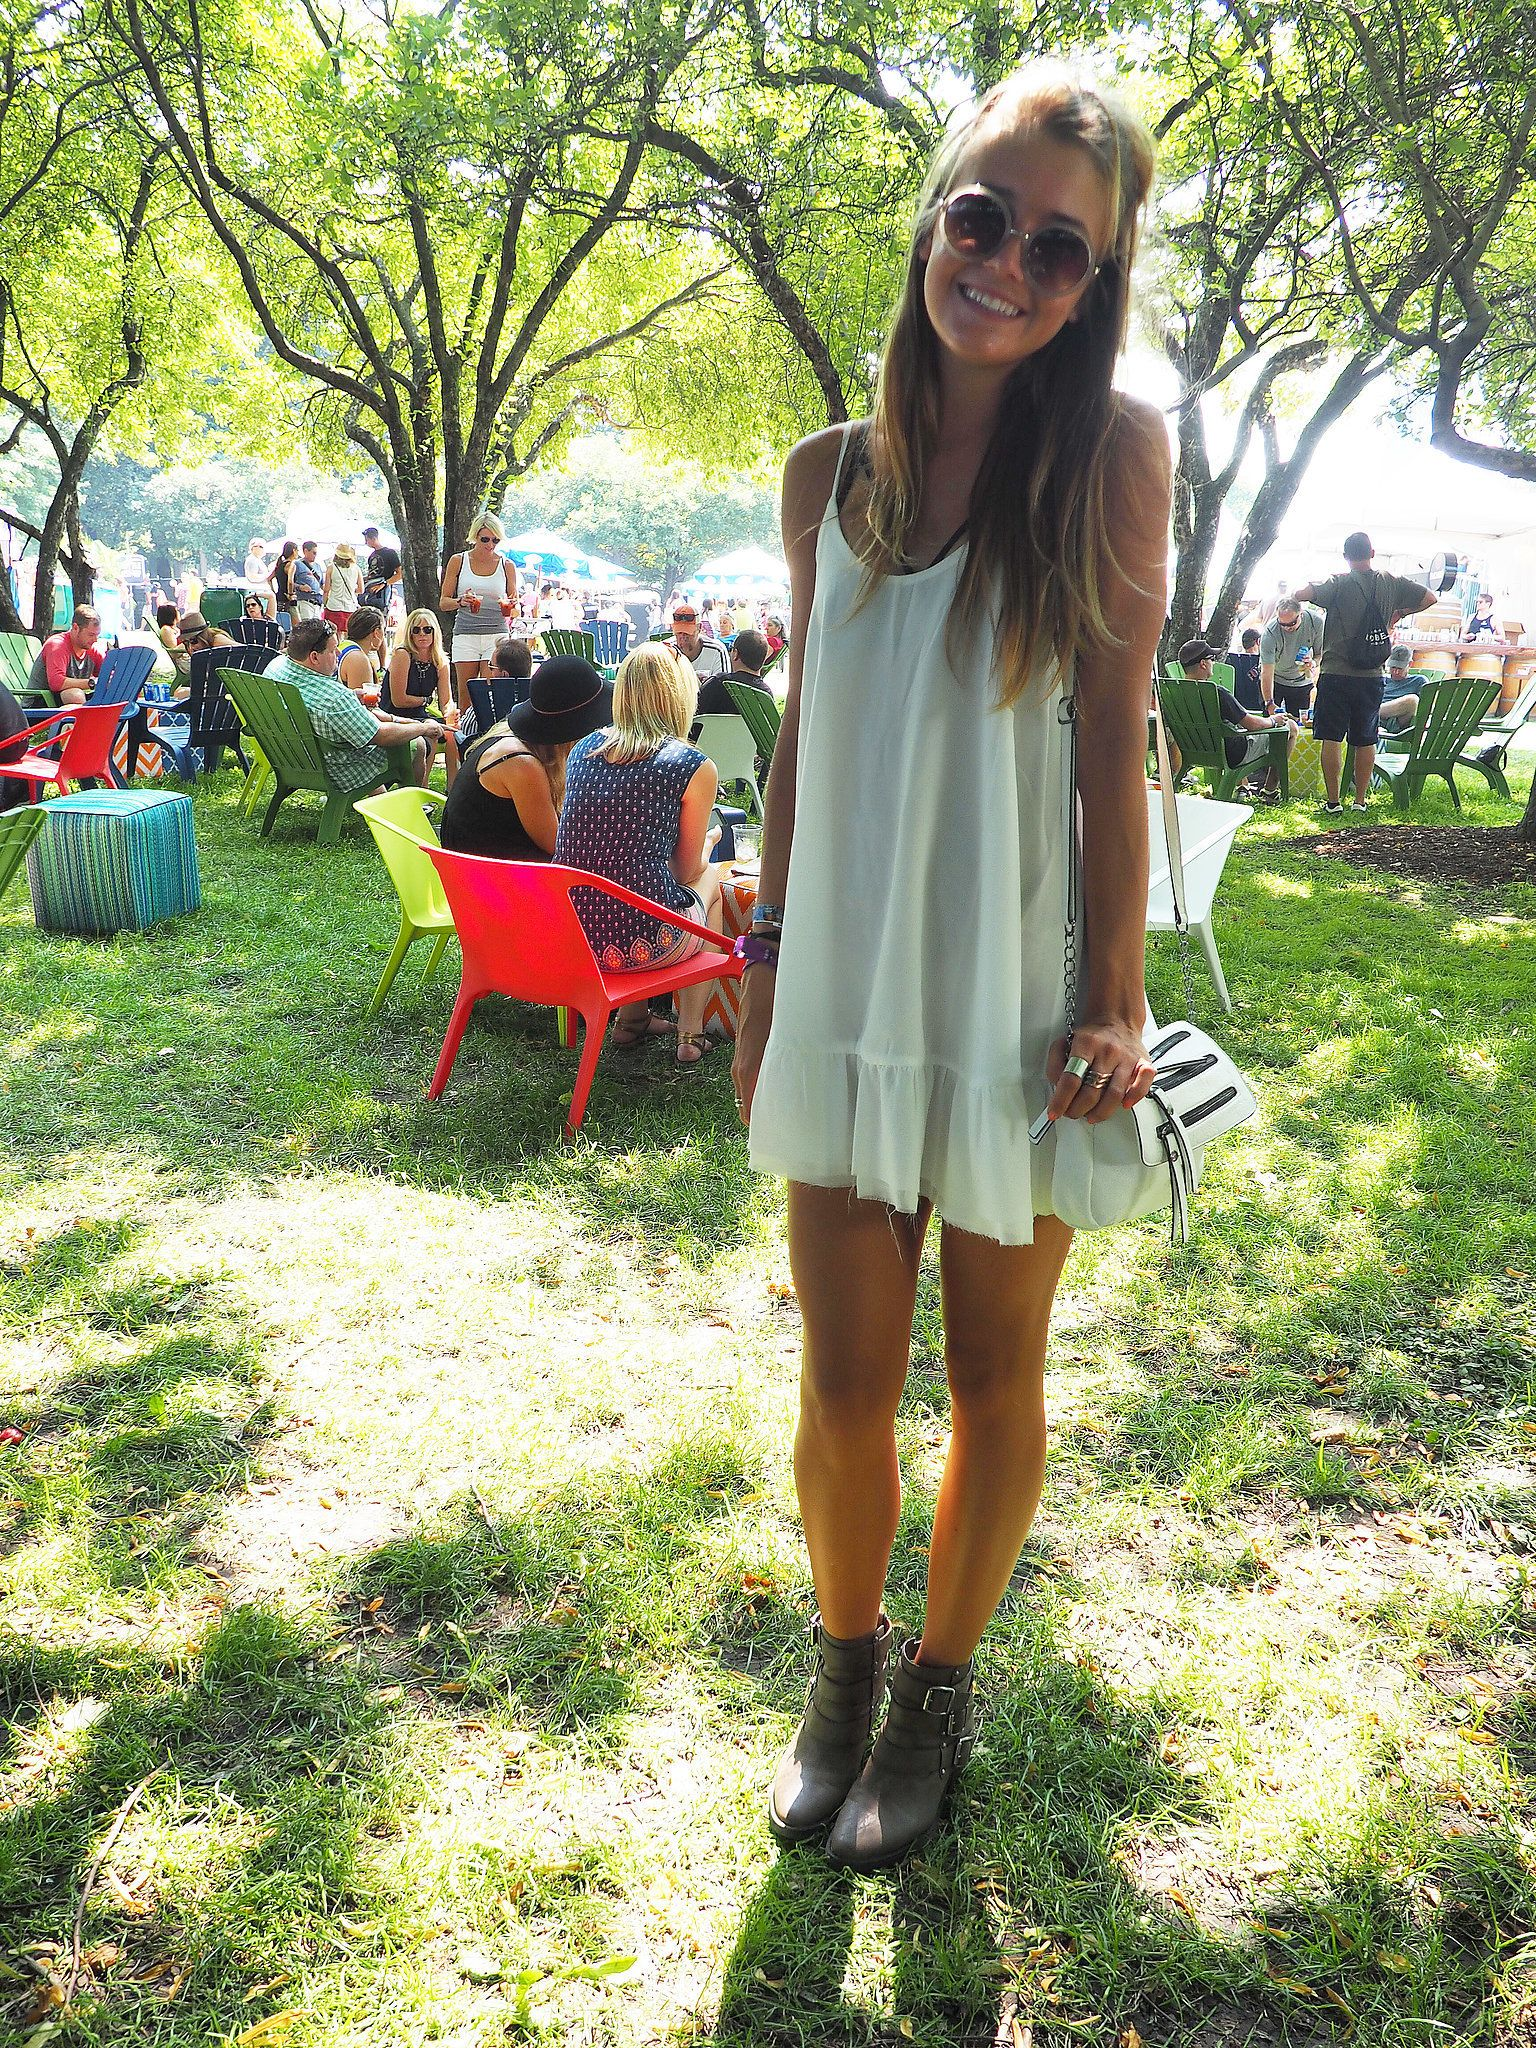 The Best Festival Looks From Lollapalooza